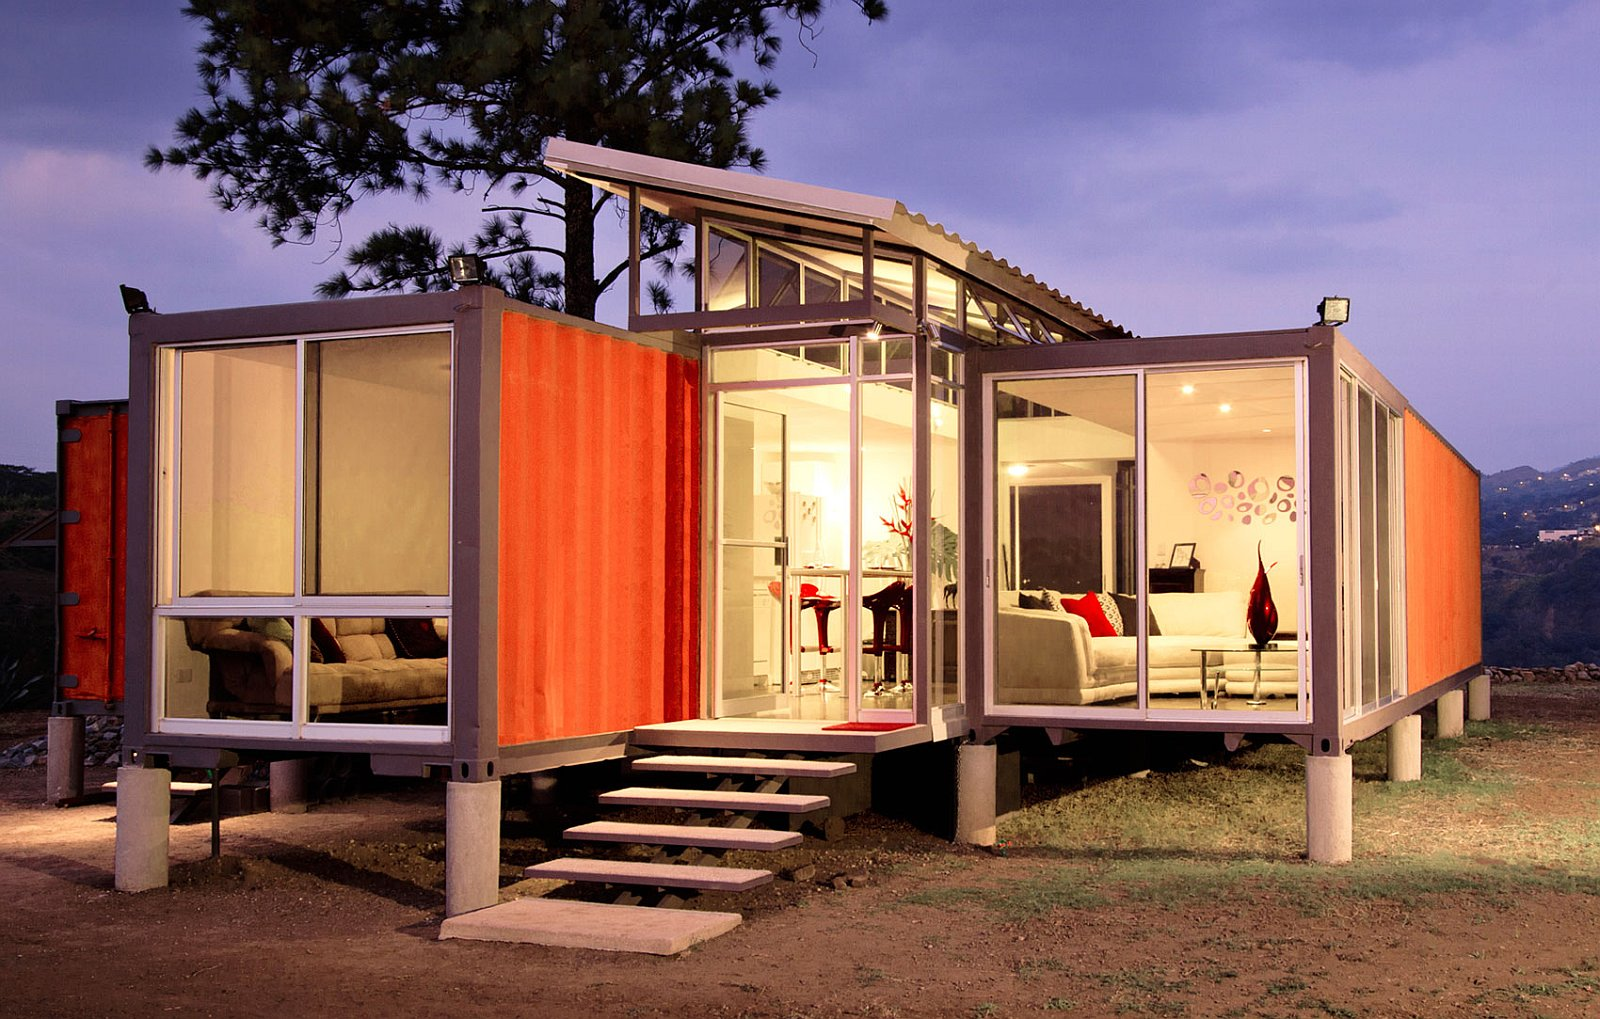 Best Kitchen Gallery: Containers Of Hope A Low Cost Home By Benjamin Garcia Saxe Small of Purchase Shipping Container Home on rachelxblog.com